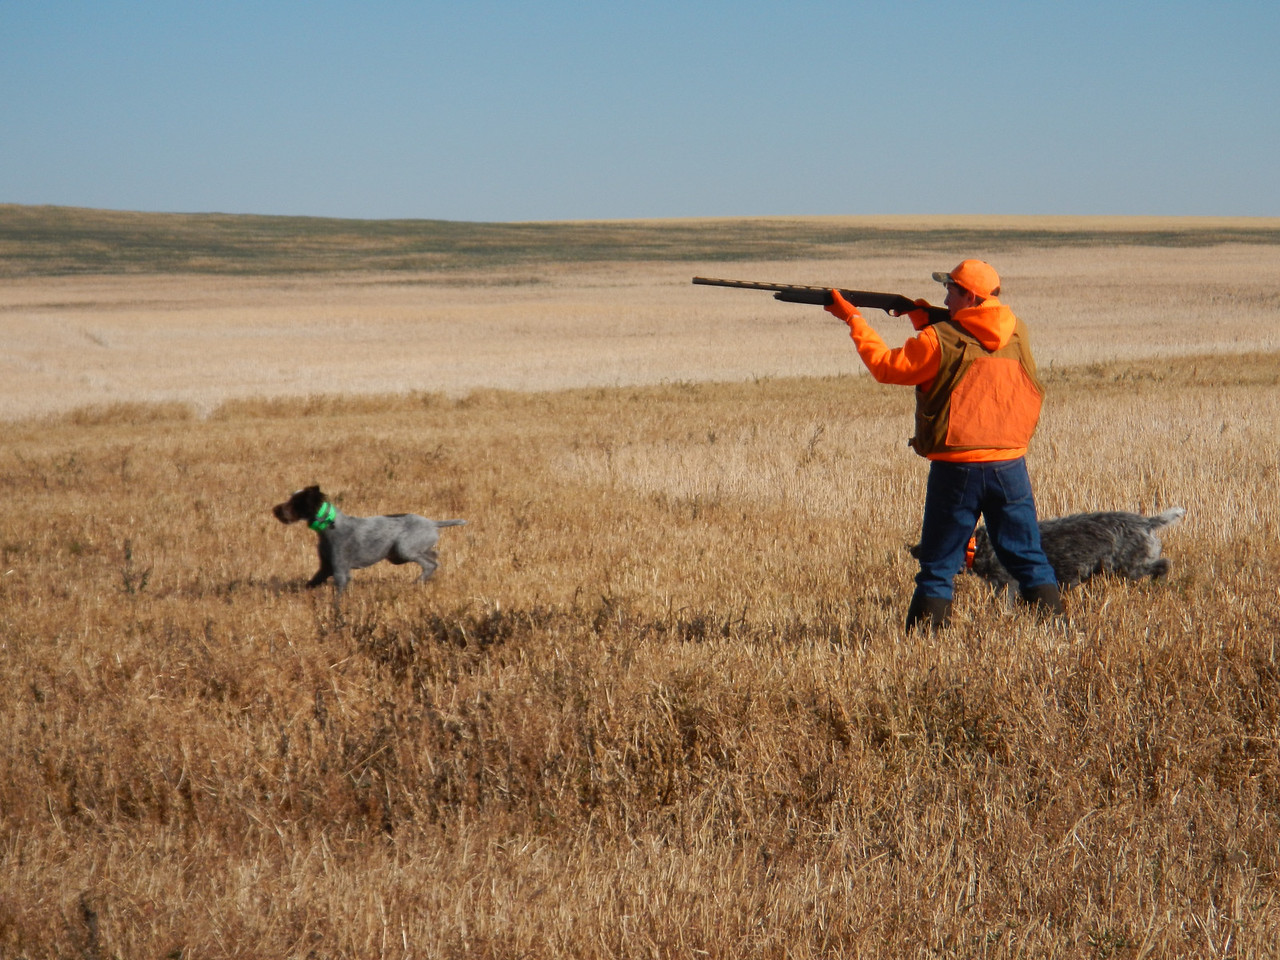 Darren Robbins on ND youth hunt with Ace of Two Rivers crossing and Abe of Ash Coulee